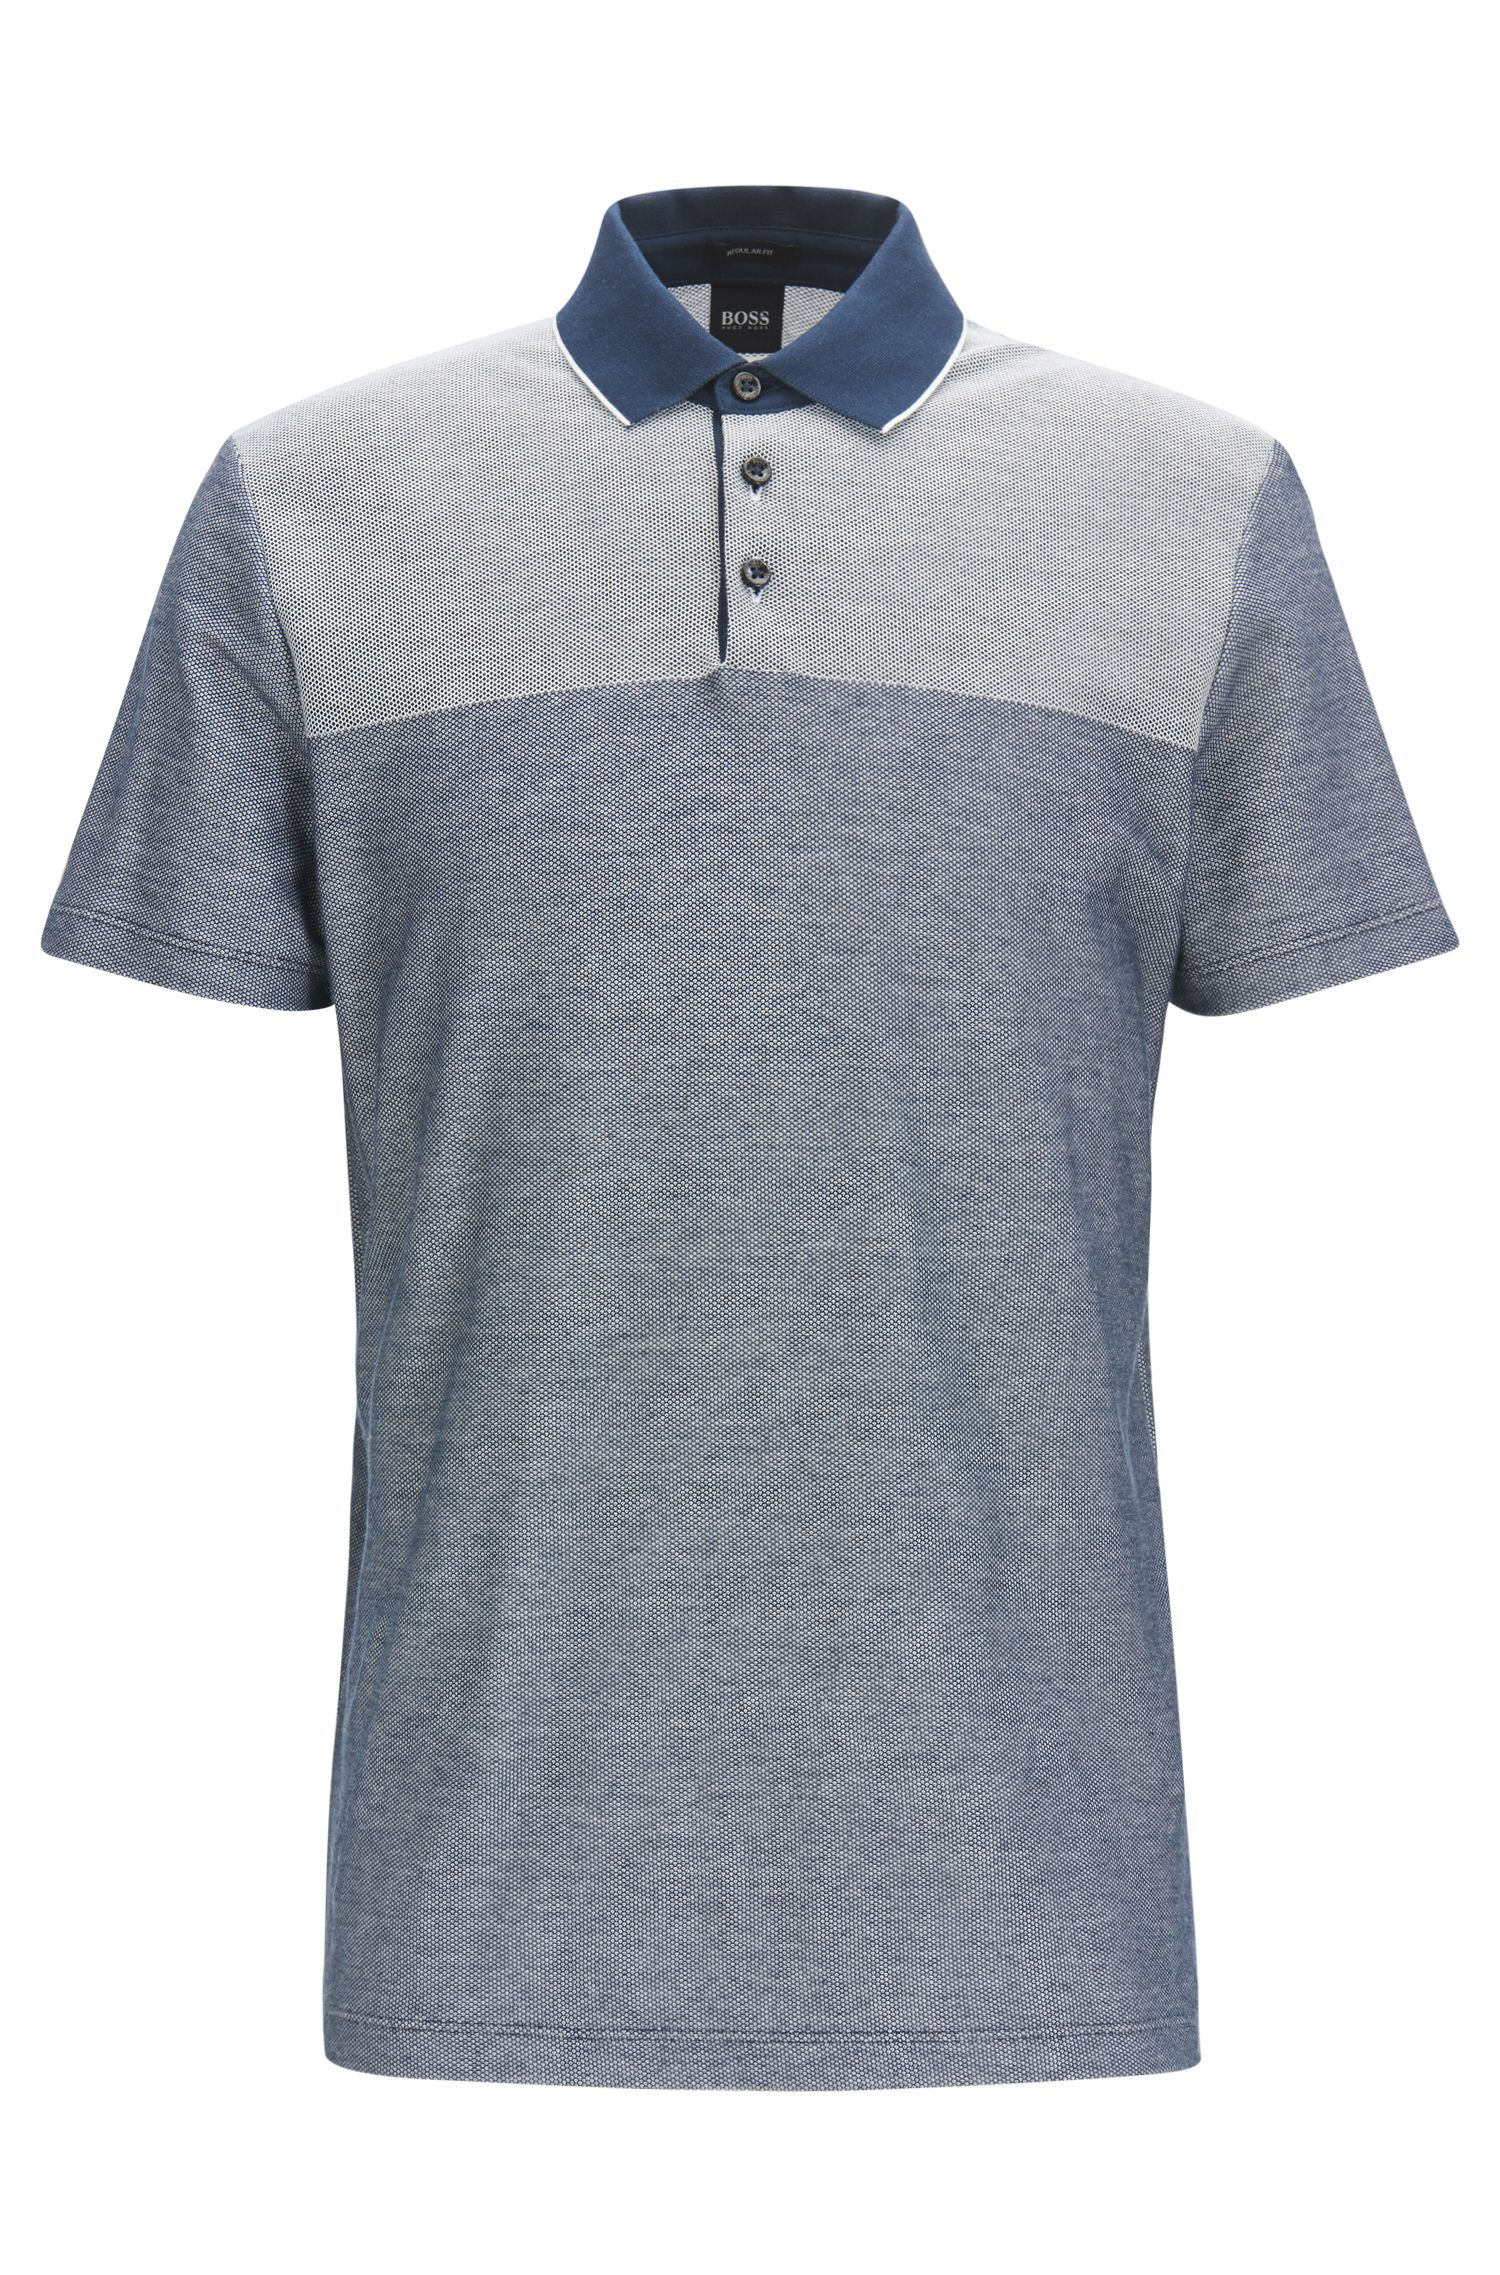 Mercerized Cotton Knit Polo Shirt, Regular Fit | Pack